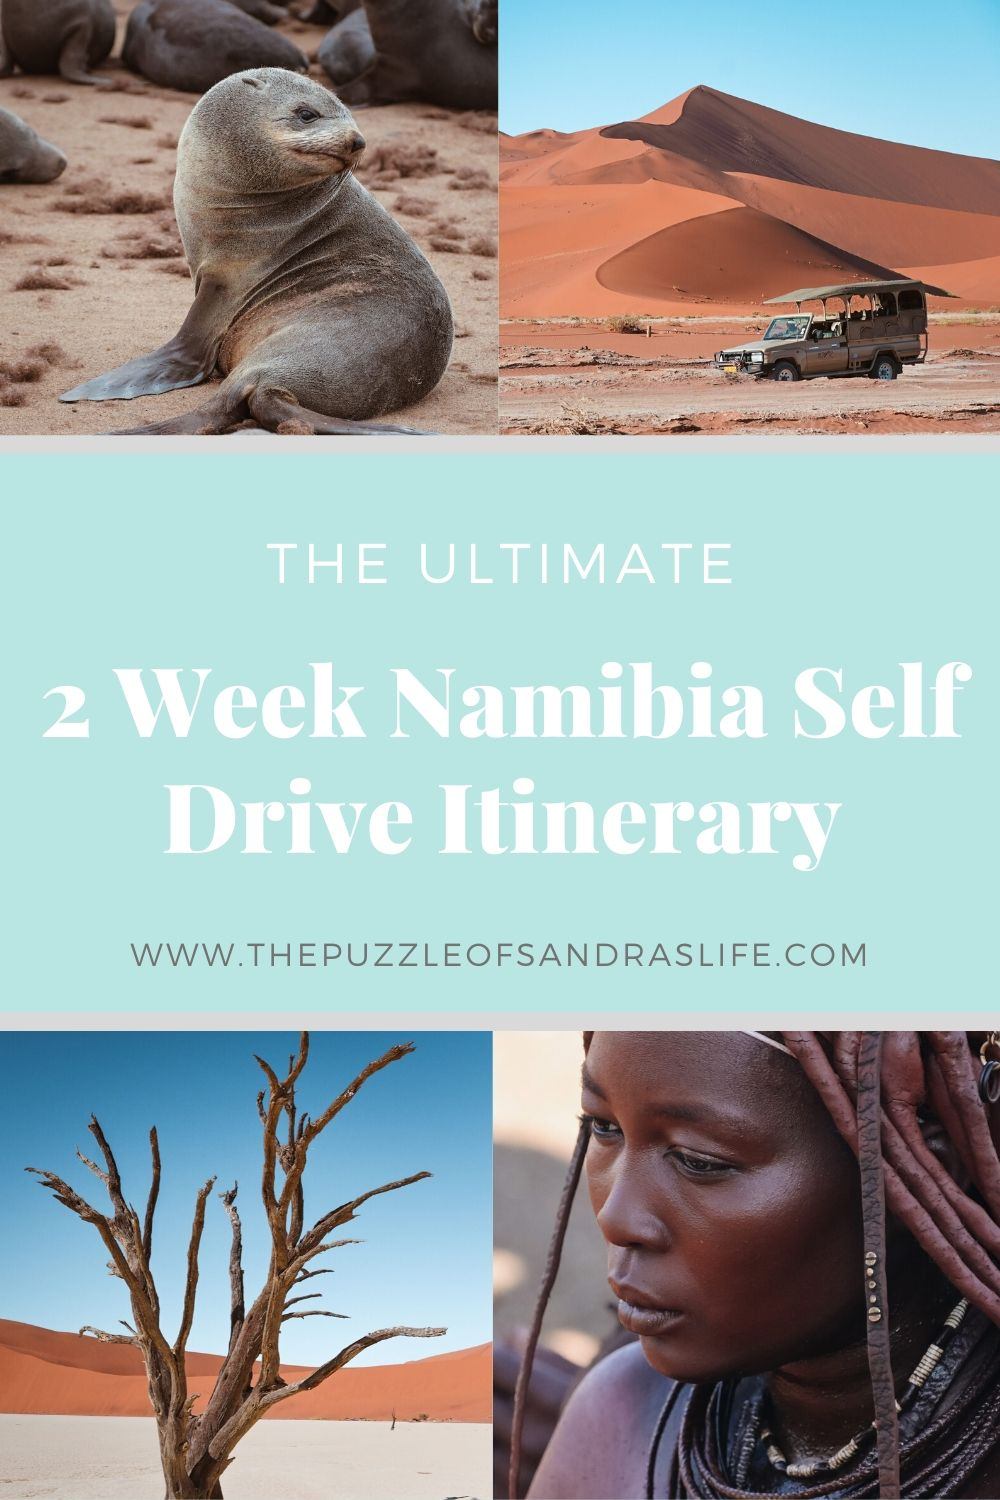 2 week Namibia self drive itinerary